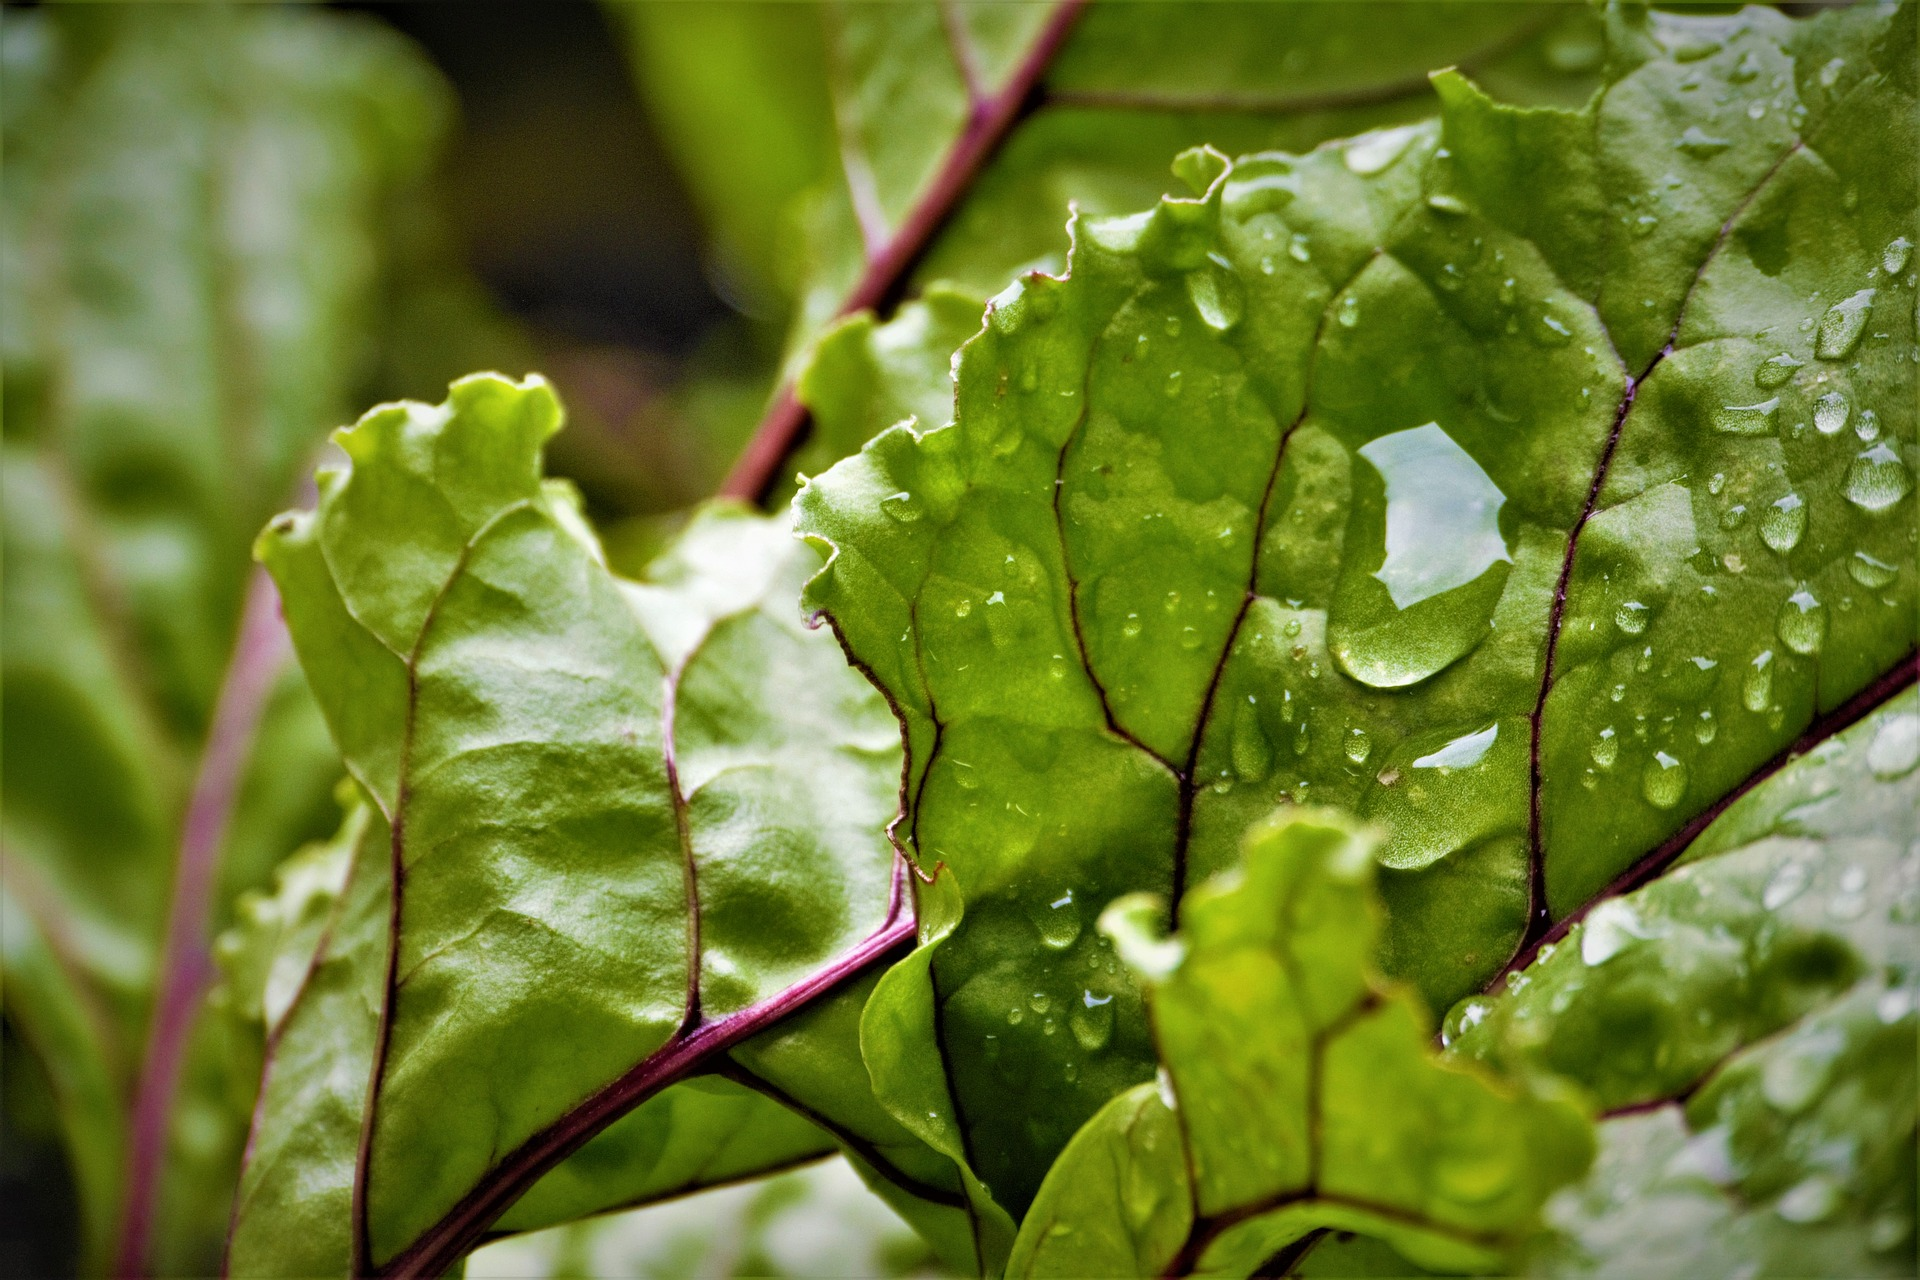 Beetroot leaves can be eaten as well as the roots. Beetroot seeds can be planted this month.